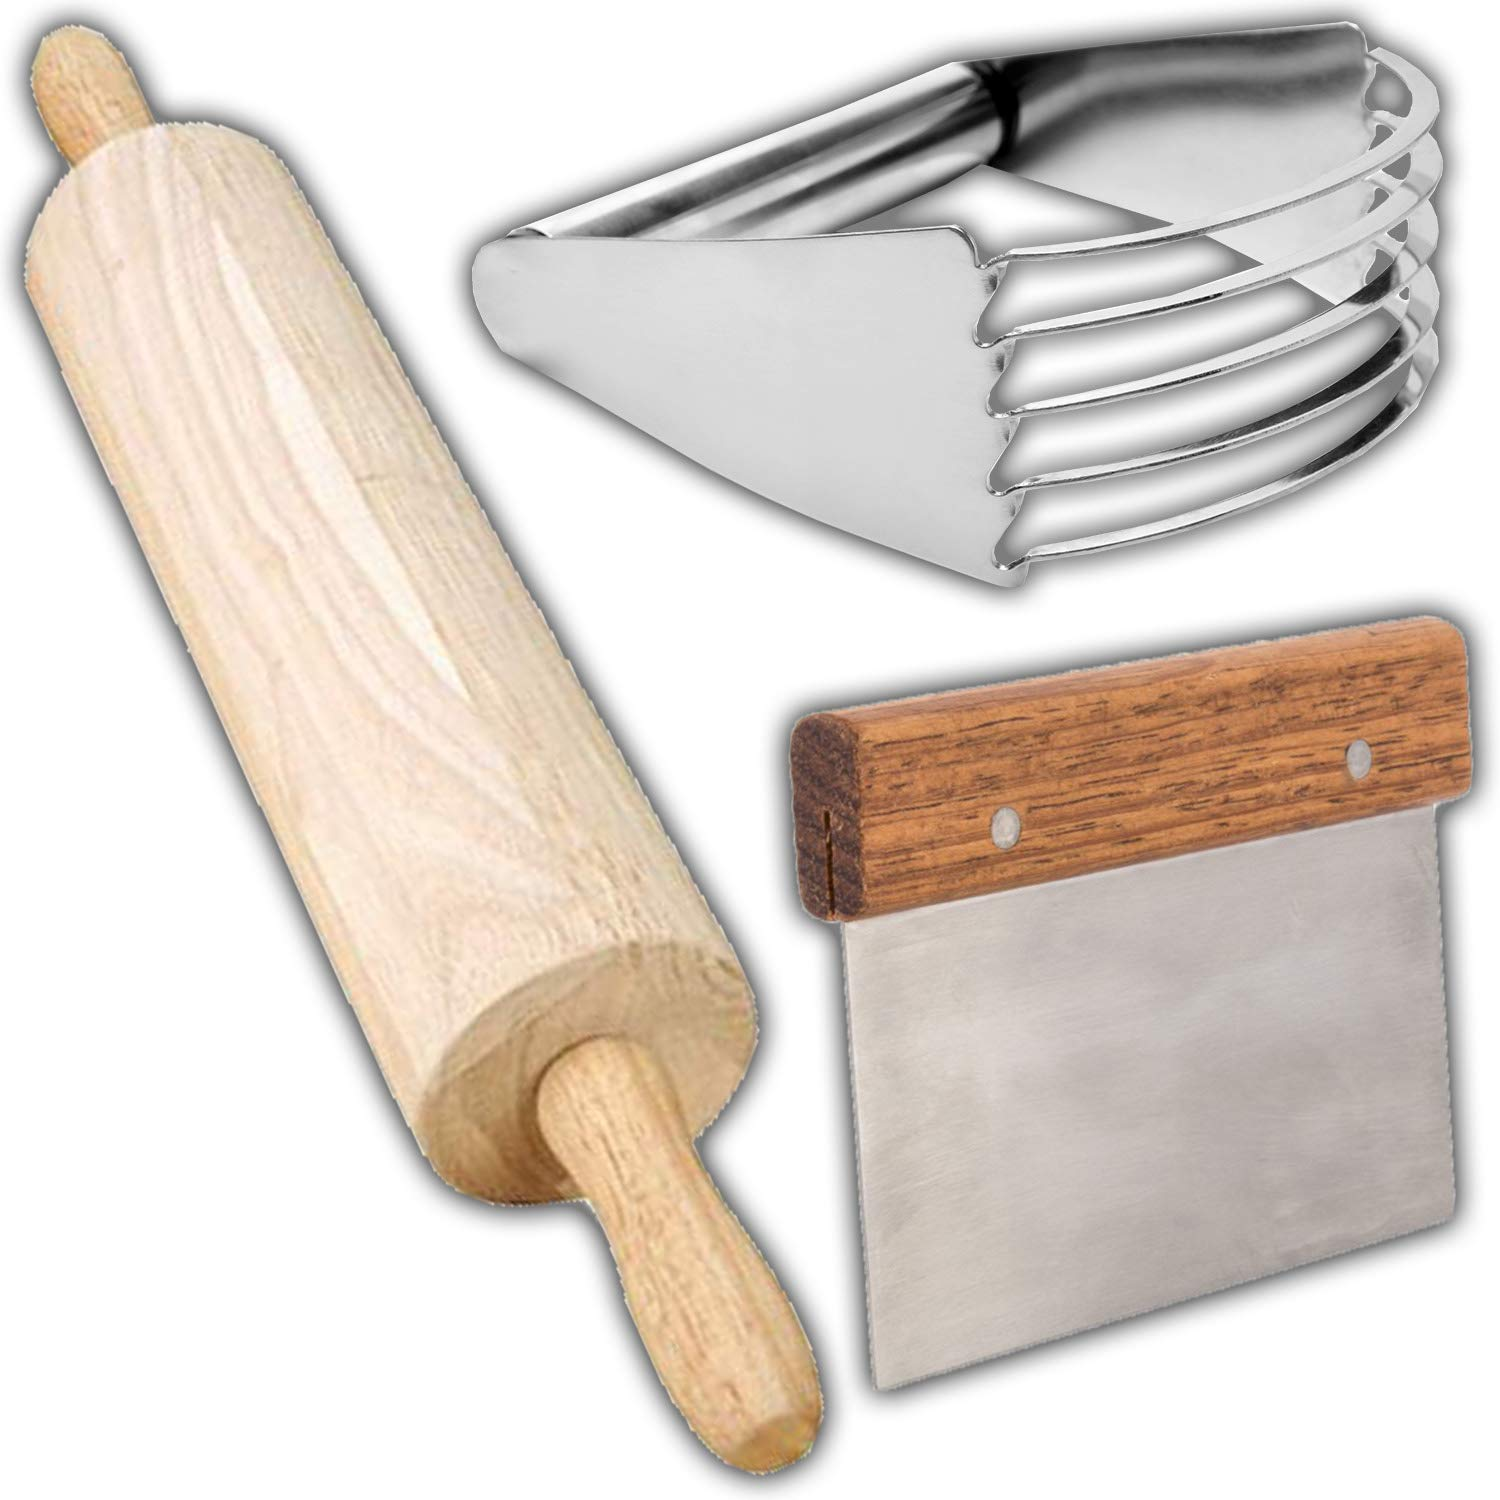 Pastry Baking Set – 13'' Wooden Rolling Pin, Dough Scraper and Blender Stainless Steel, Professional Quality Biscuit Blender, pie cutter, Heavy Duty Kitchen Baking Tools, for commercial and home use.